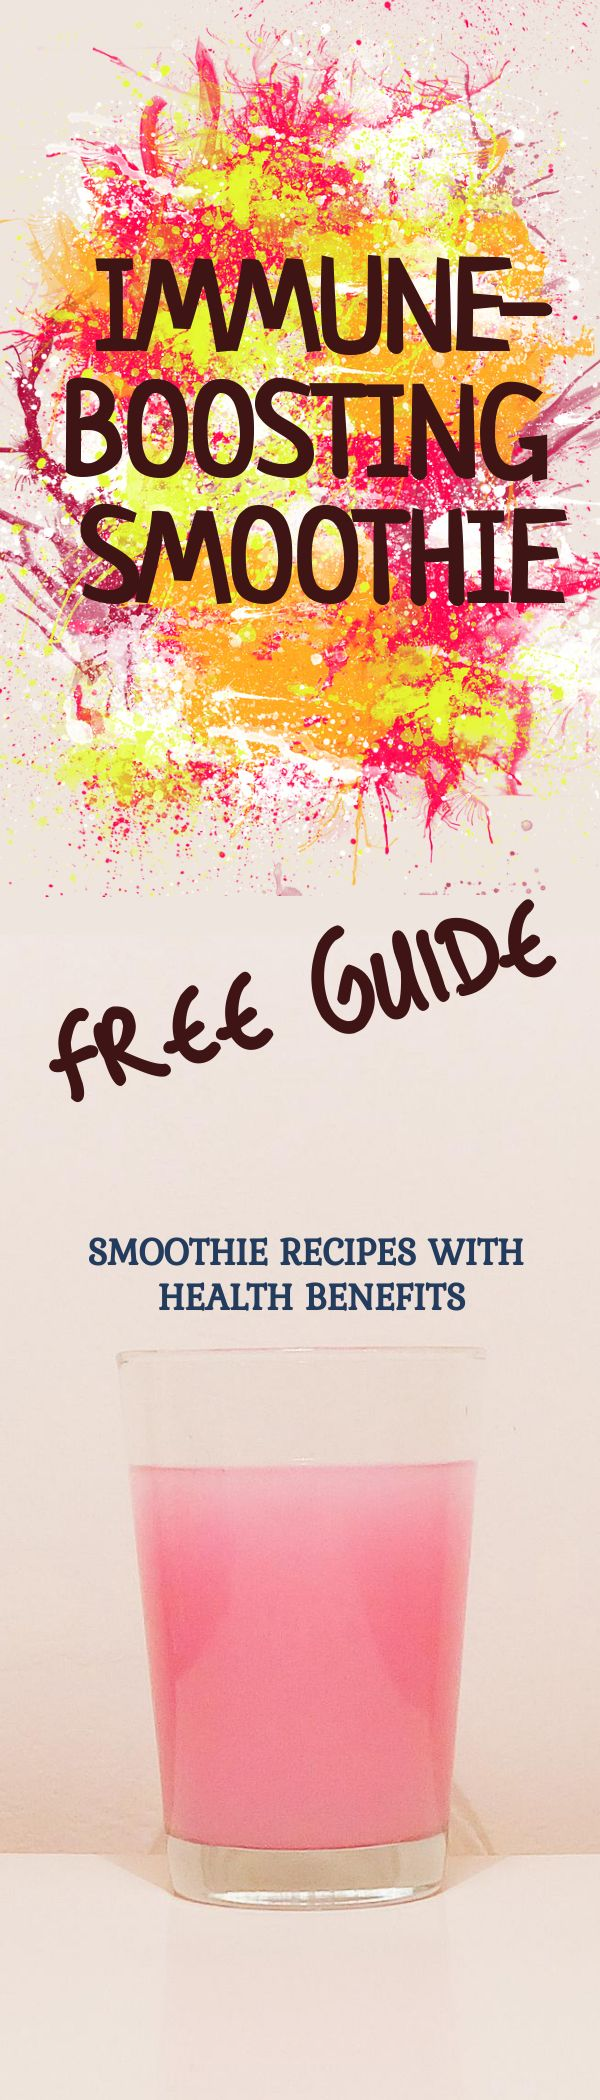 FREE GUIDE! HEALTHY & DELICIOUS SMOOTHIE RECIPES with health benefits: Nourishing Smoothie Recipe Detox Smoothie Recipe Weight Loss Smoothie Recipe Anti-Aging Smoothie Recipe Immune-Boosting Smoothie Energizing Smoothie Recipe Brain-Boosting Smoothie Anti http://healthyquickly.com/5-healthy-smoothies-for-weightloss/